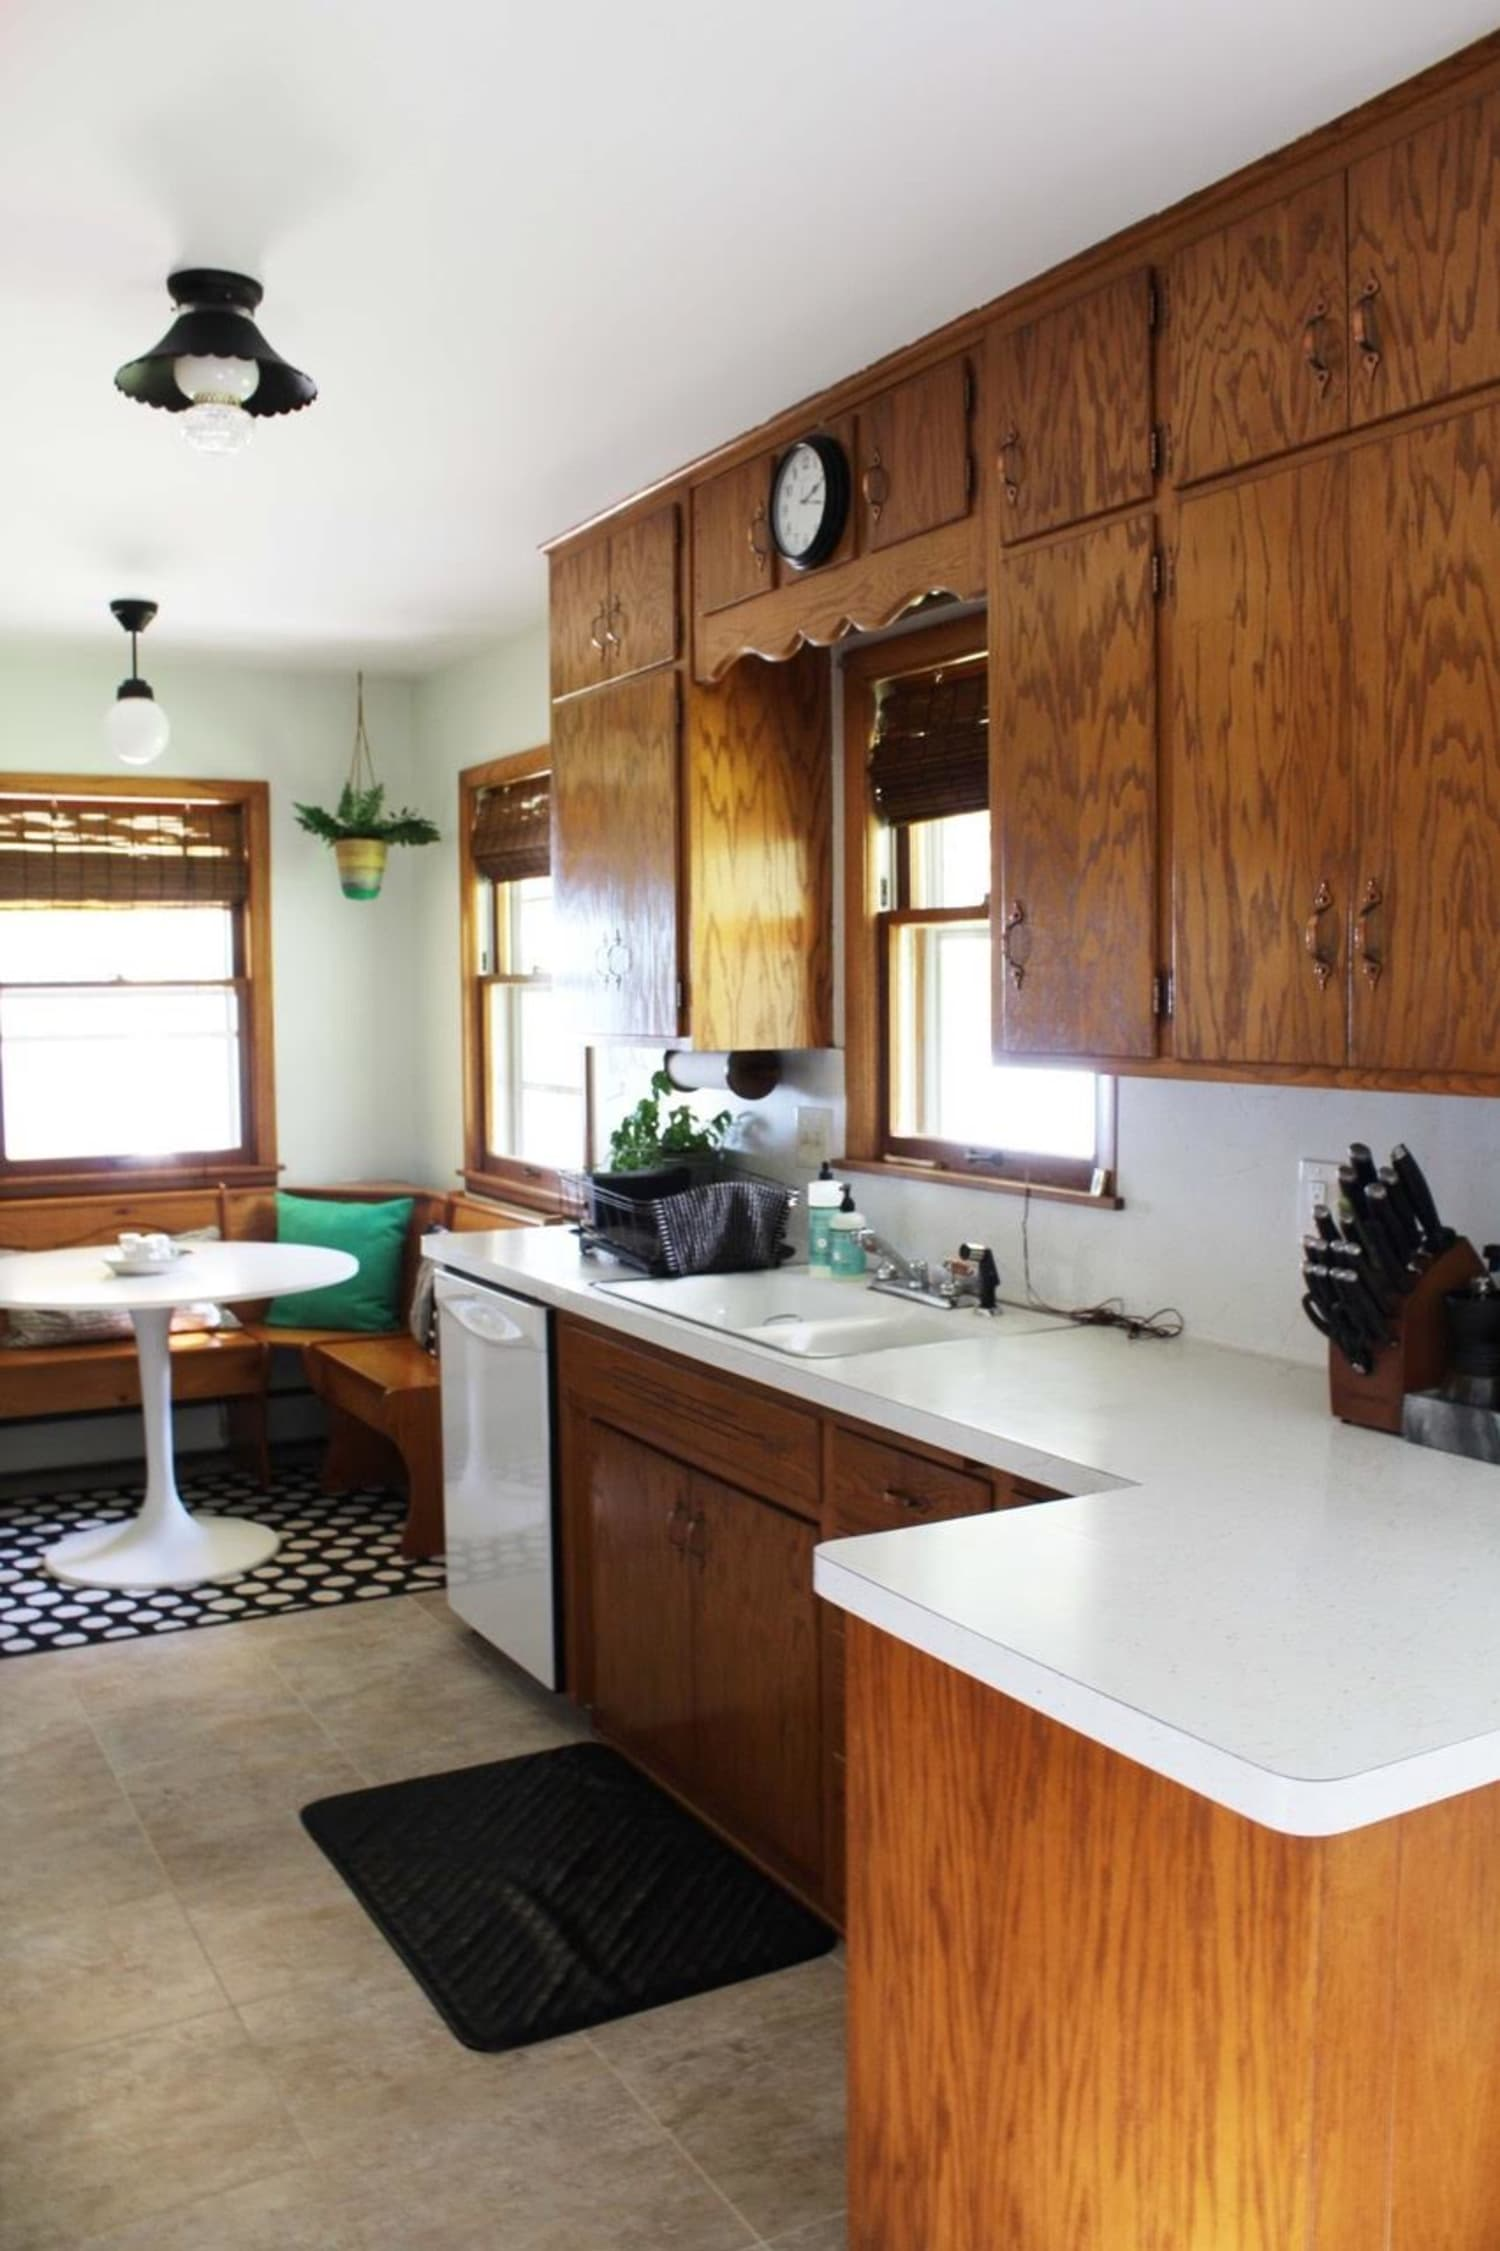 Before & After: This Kitchen Got a $200 Makeover and Now It's Amazing